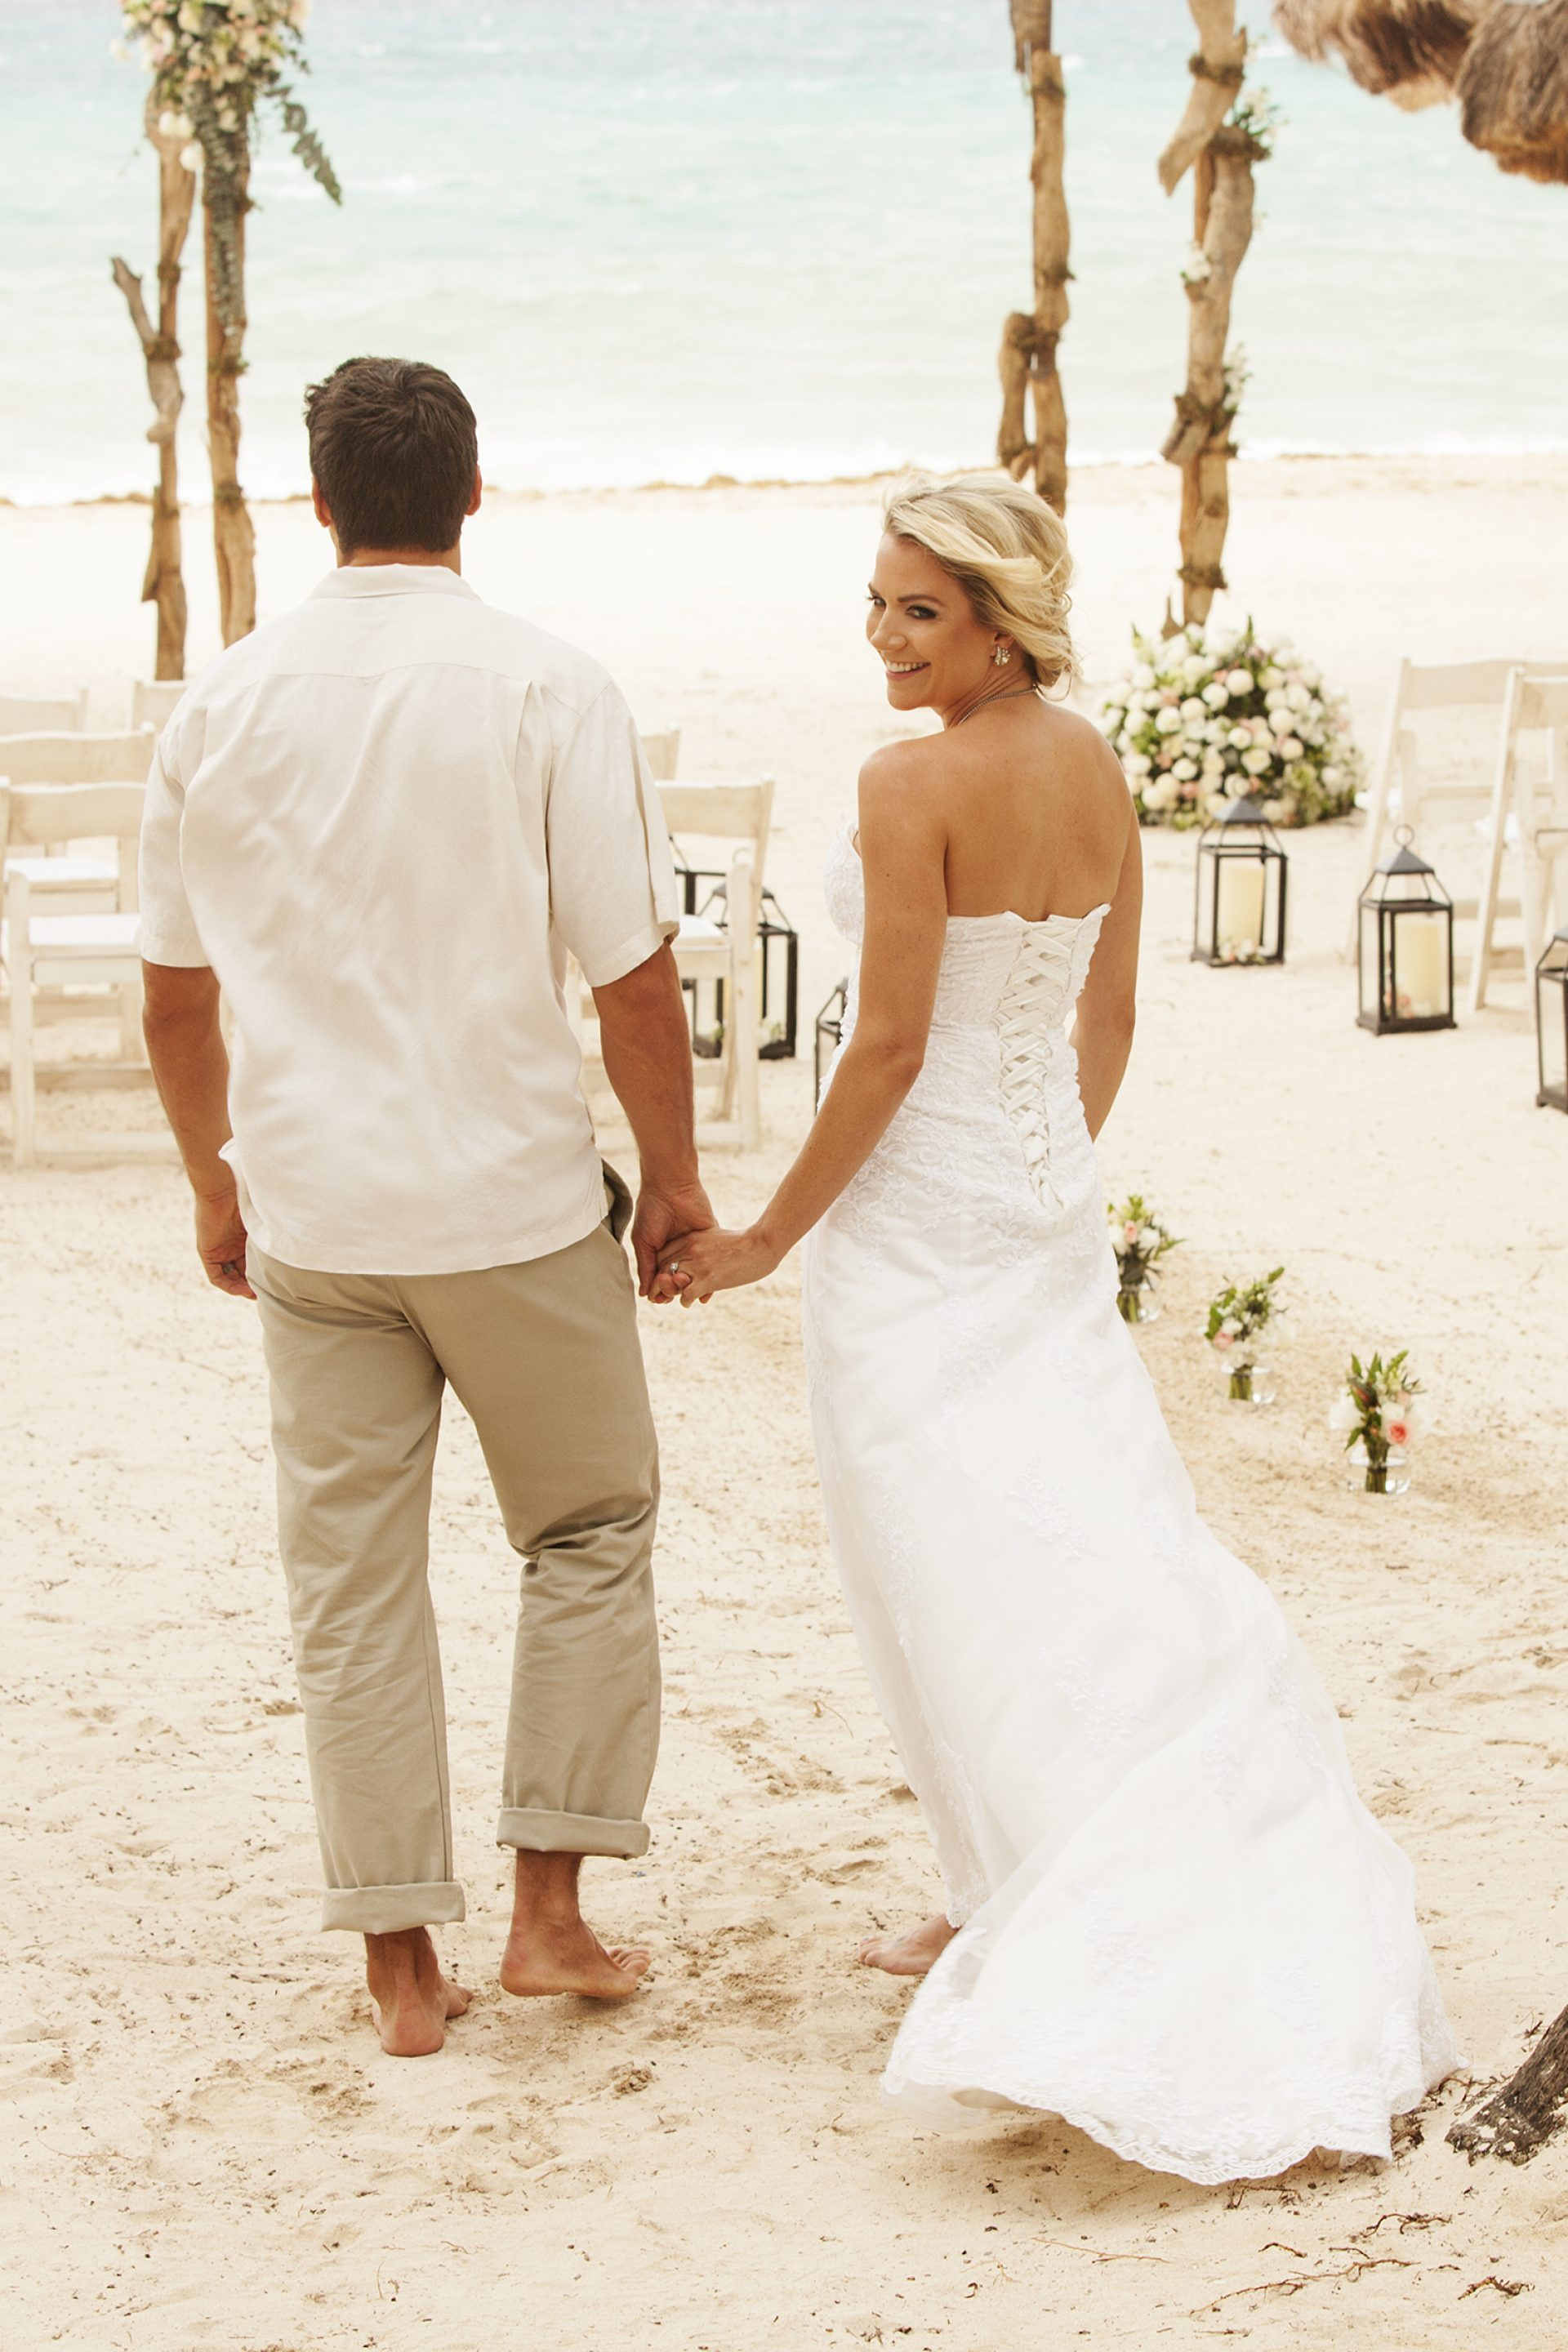 Beachfront Weddings in Playa del Carmen Mexico